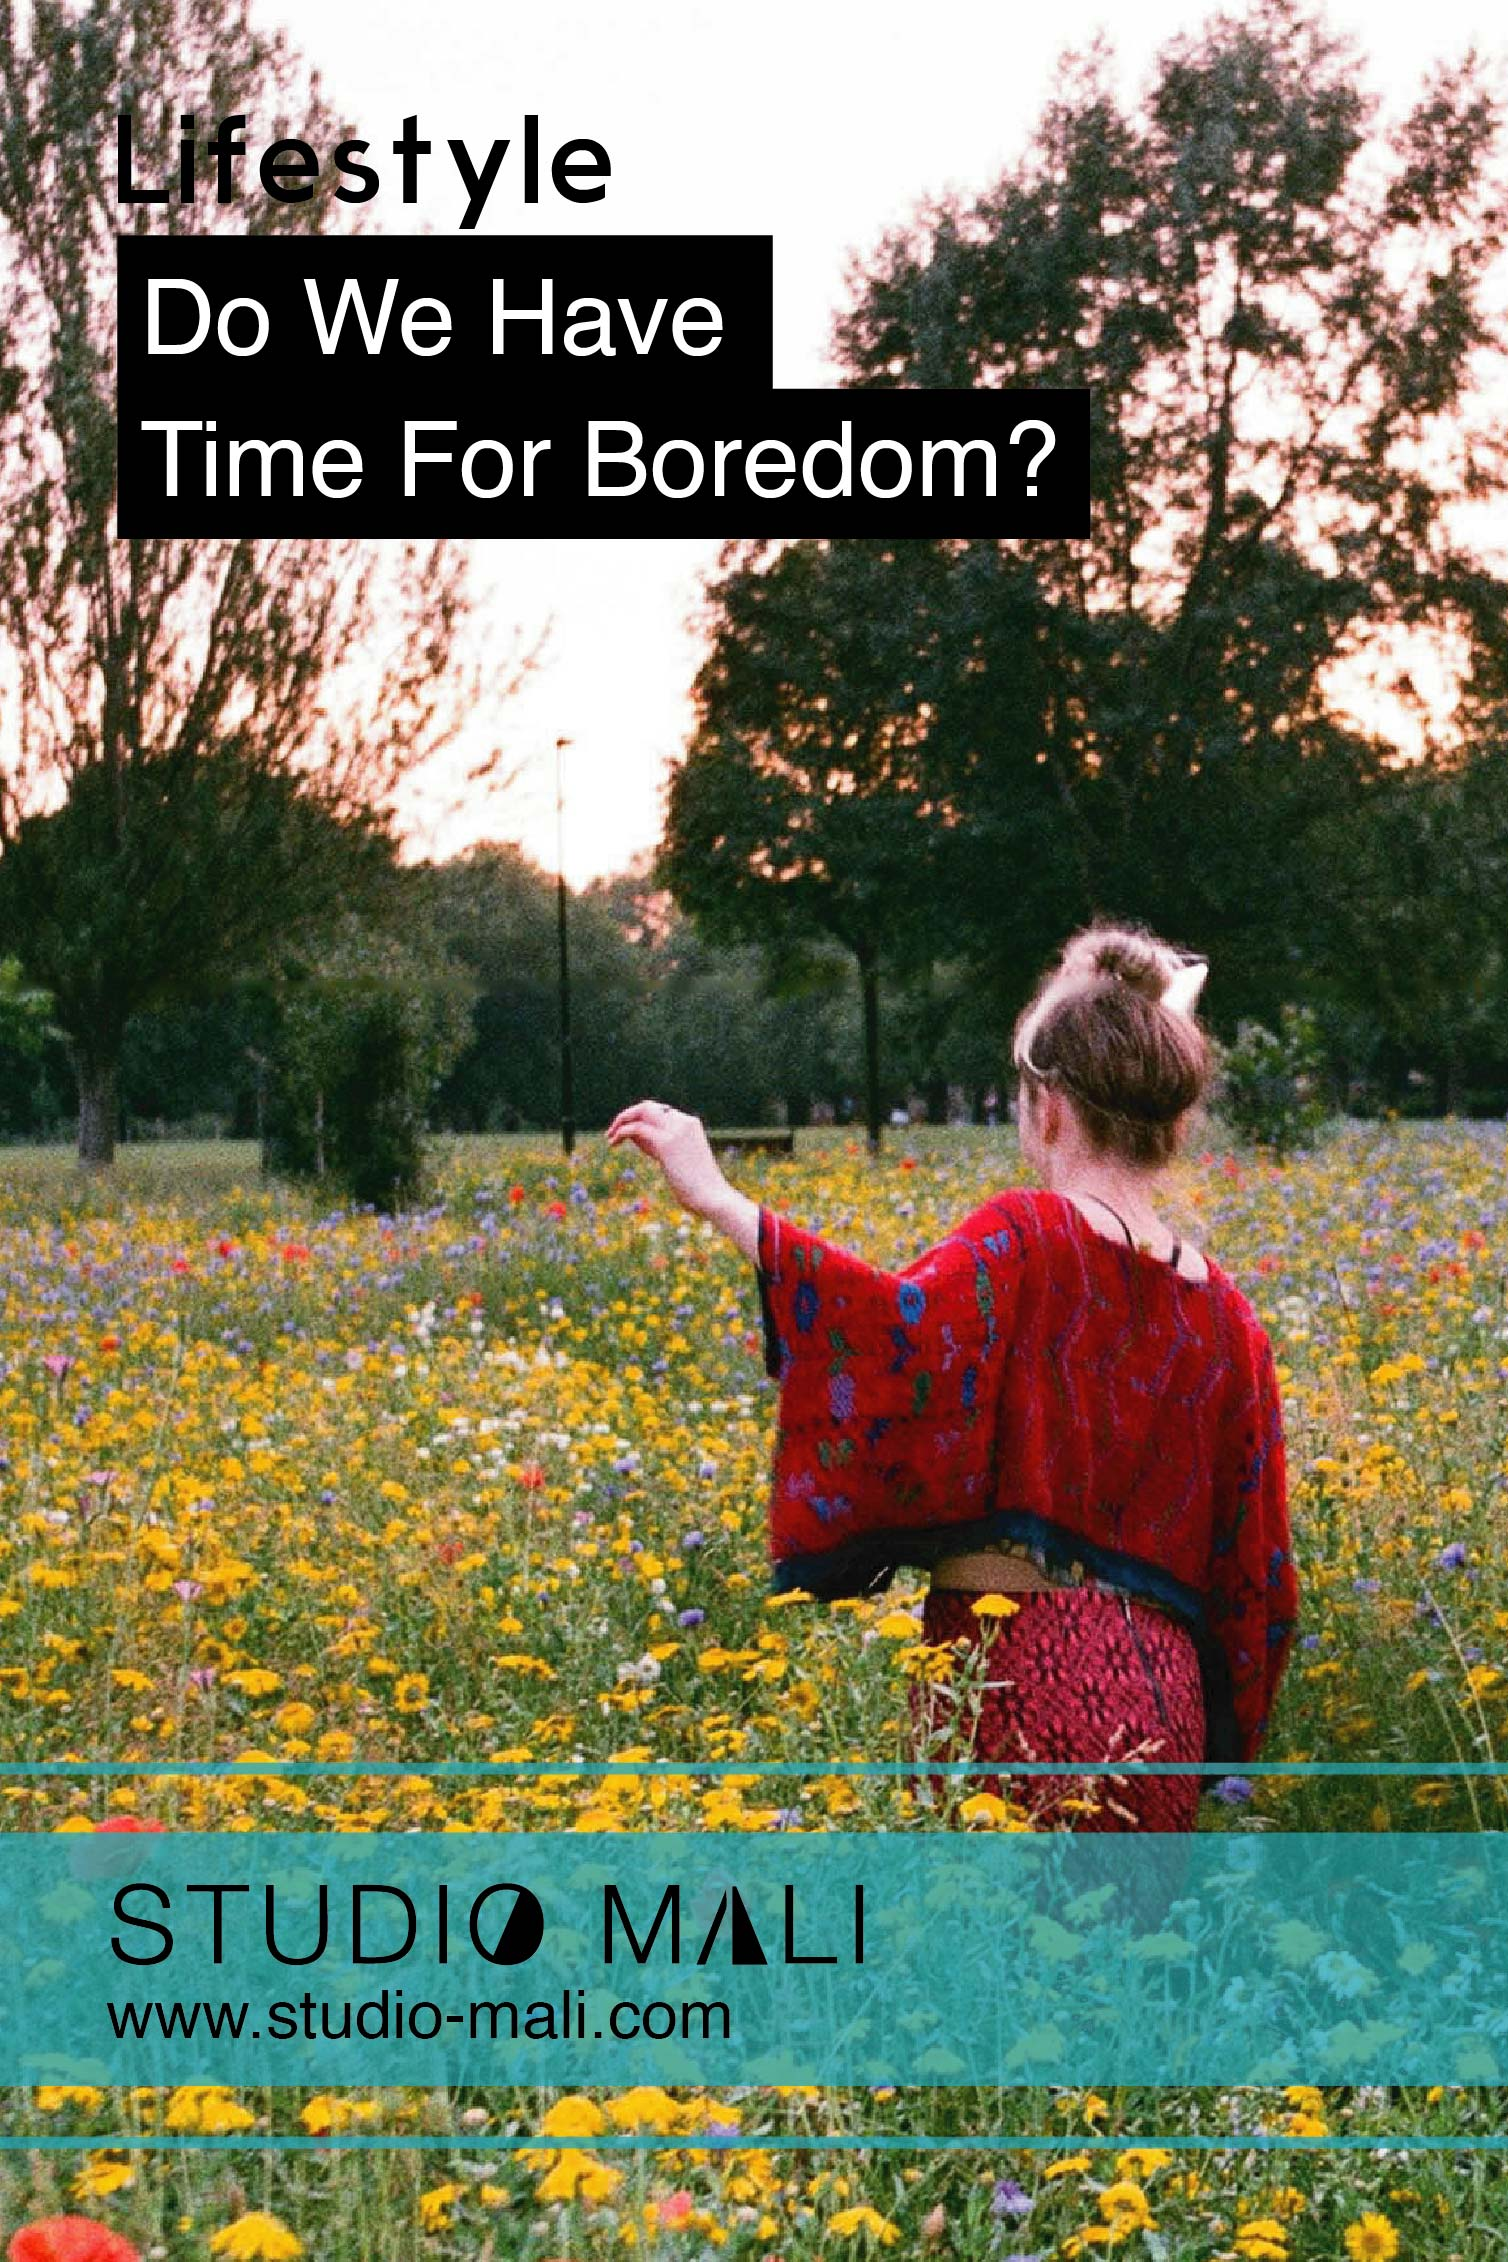 Lifestyle: Do We Have Time For Boredom? By Studio Mali